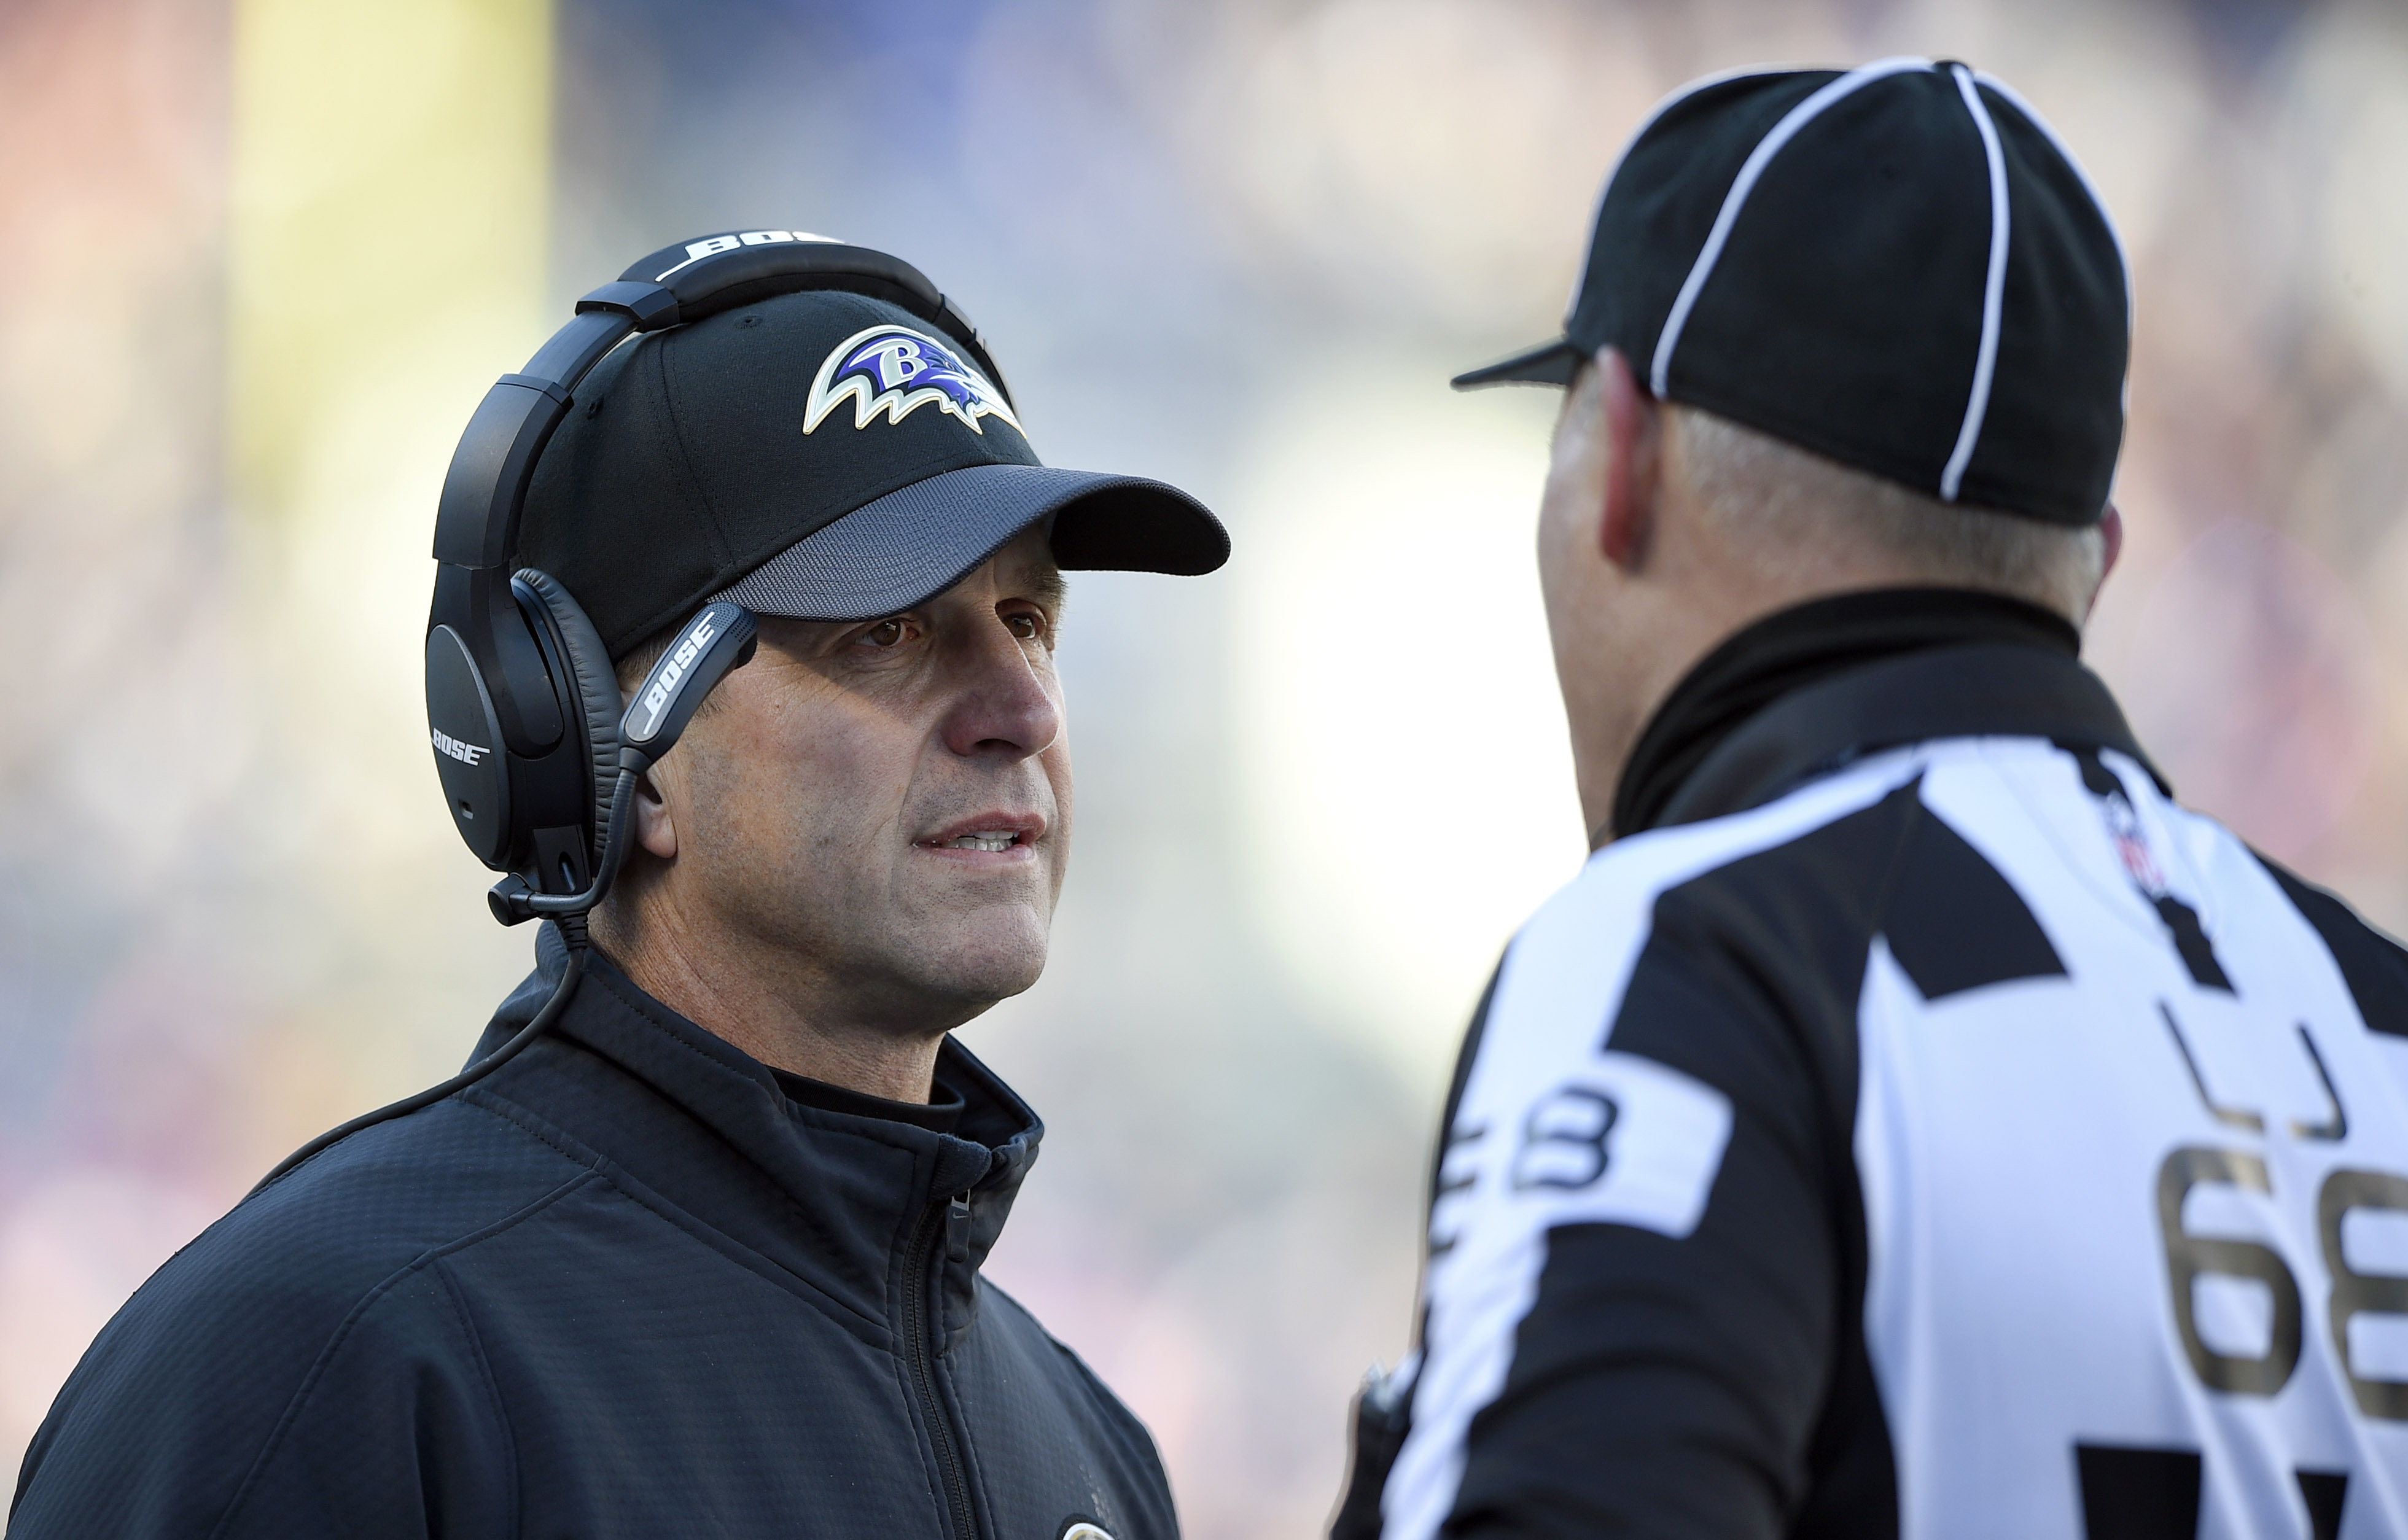 Baltimore Ravens head coach John Harbaugh, left, speaks with line judge Tom Stephan in the first half of an NFL football game against the Kansas City Chiefs, Sunday, Dec. 20, 2015, in Baltimore. (AP Photo/Nick Wass)